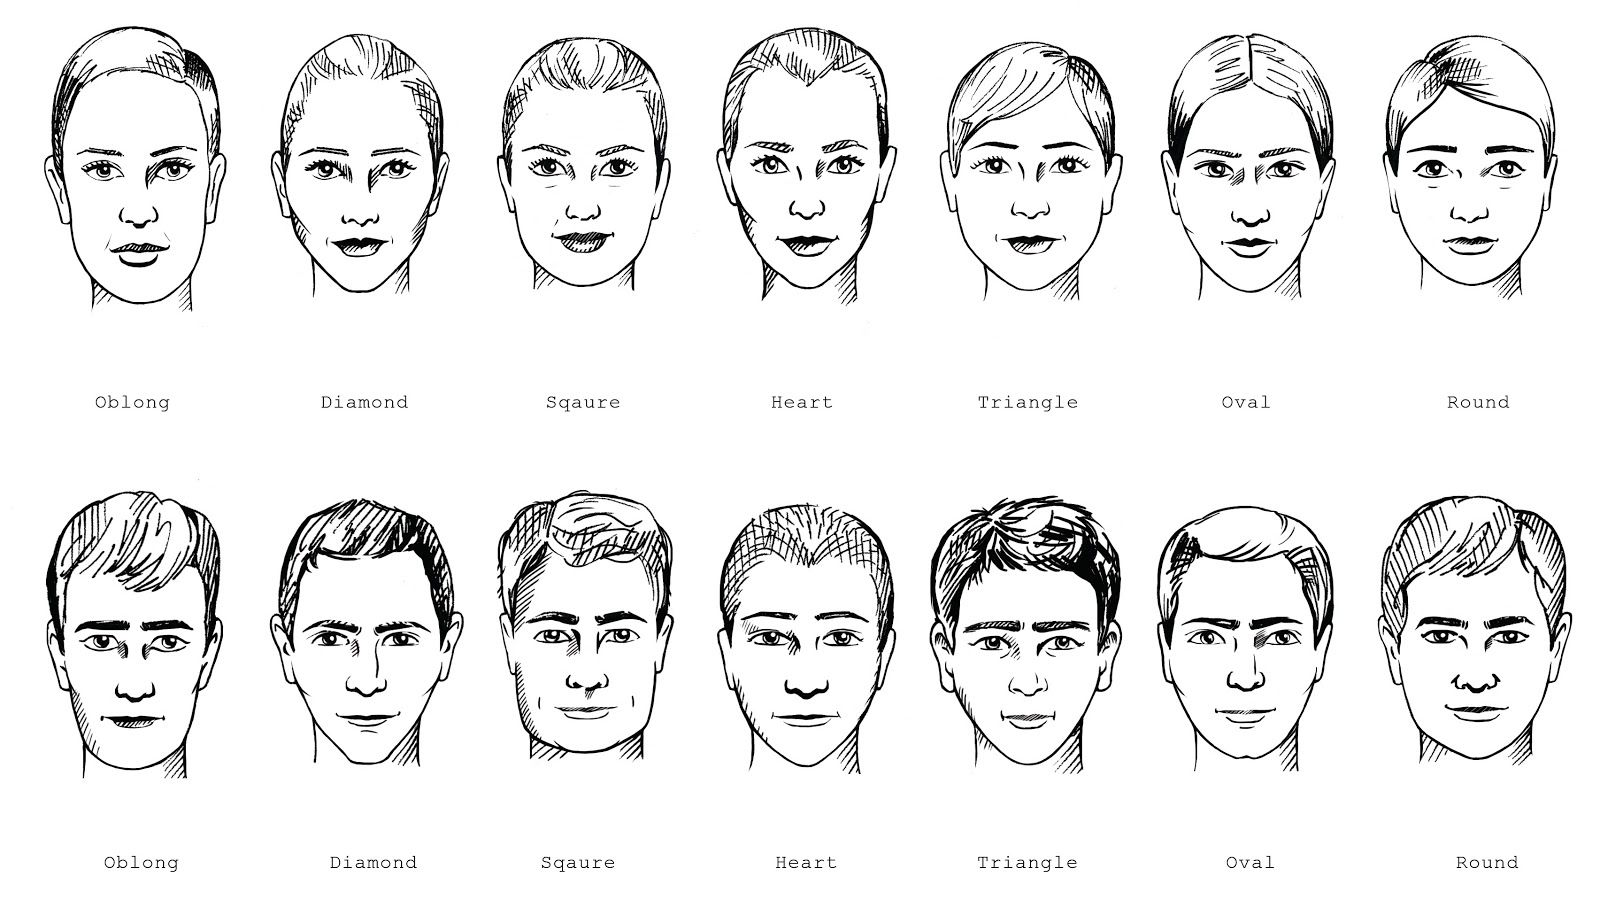 Face shapes | Male face shapes, Drawing face shapes, Face shape chart